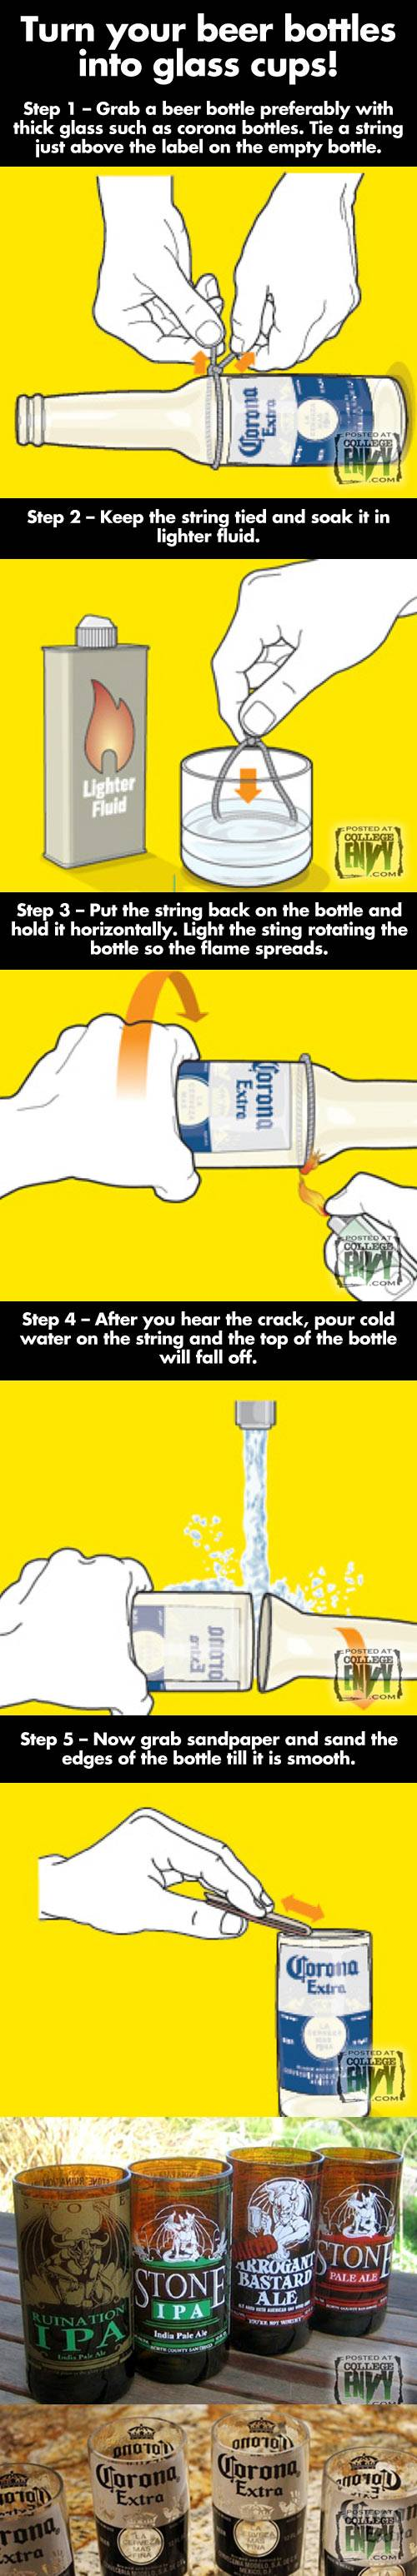 How to turn your beer bottles into glass cups!